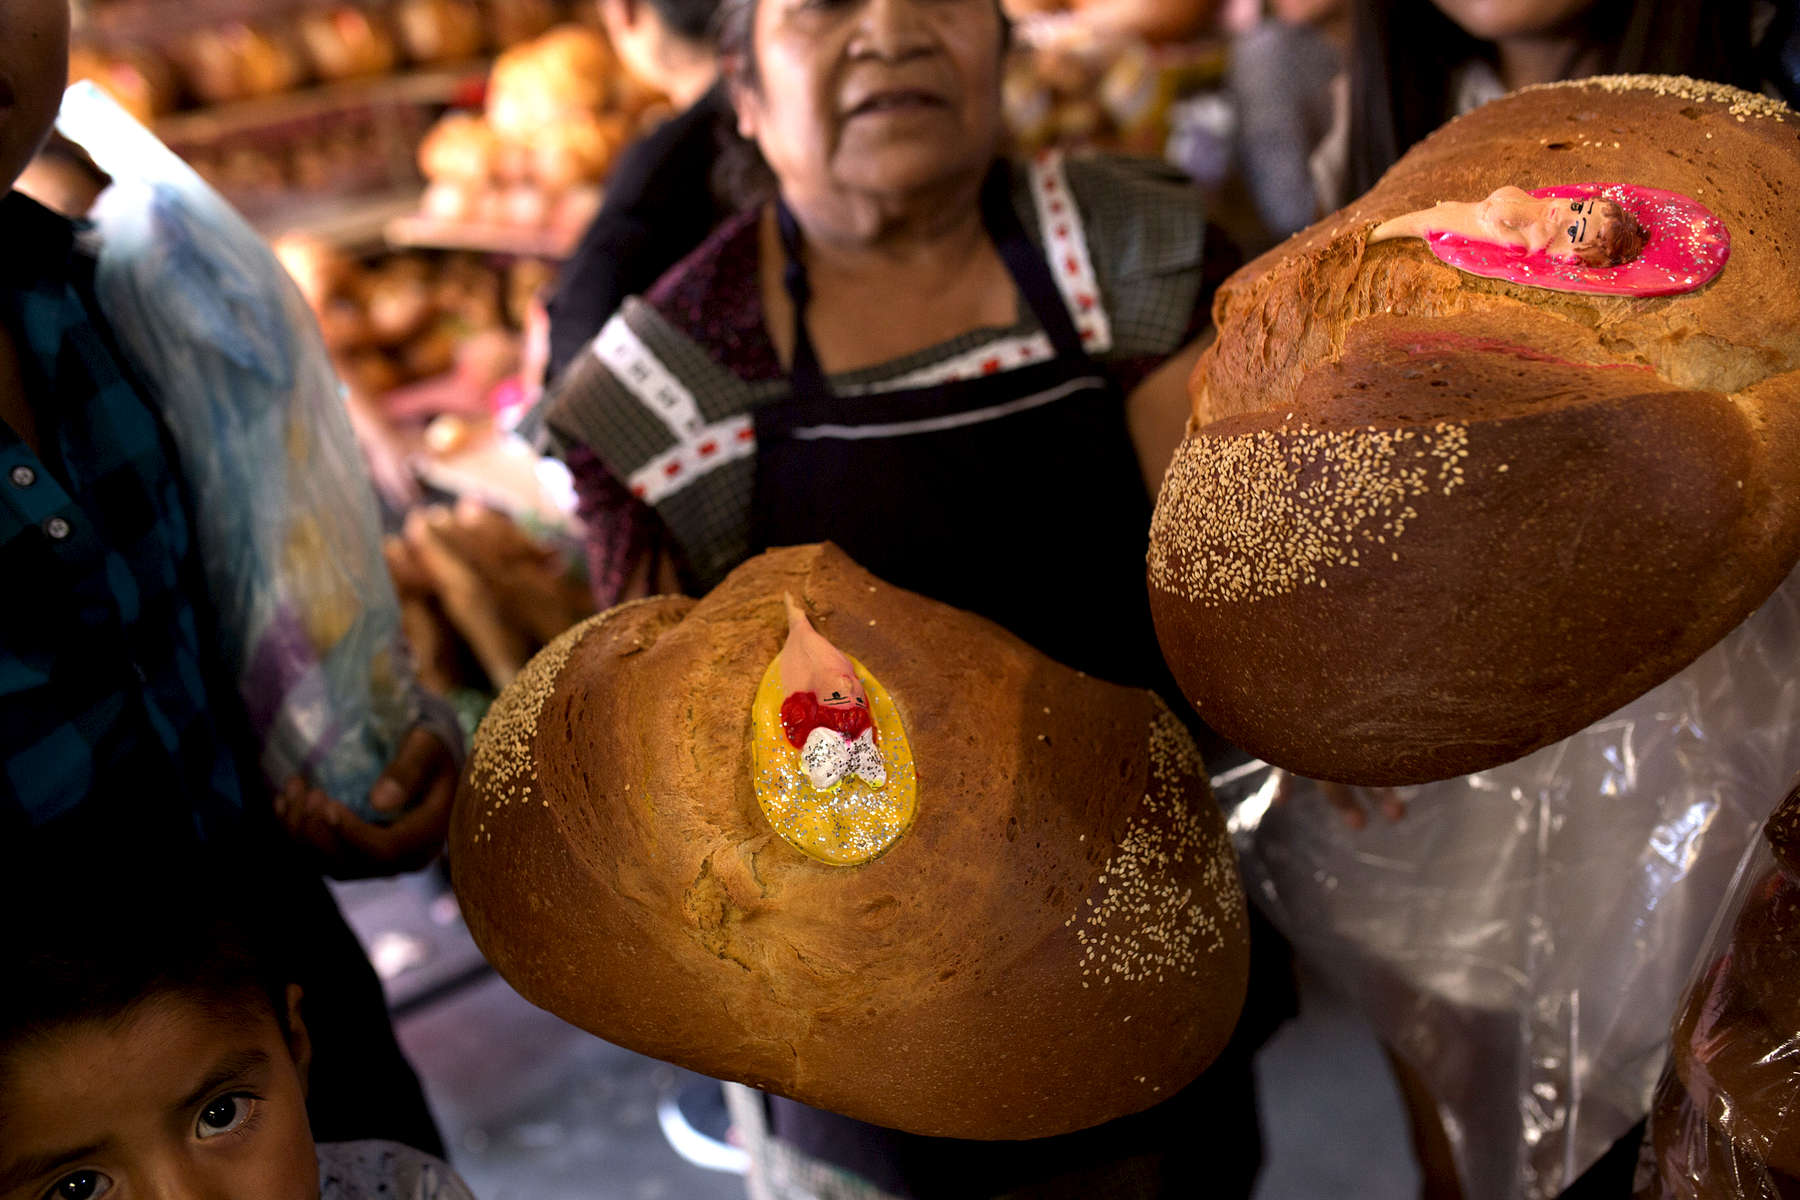 Ernesto Gonzalez (left) buys pan de muerto with his family from Soledad Martínez García (right) at Central de Abasto market in Oaxaca City.